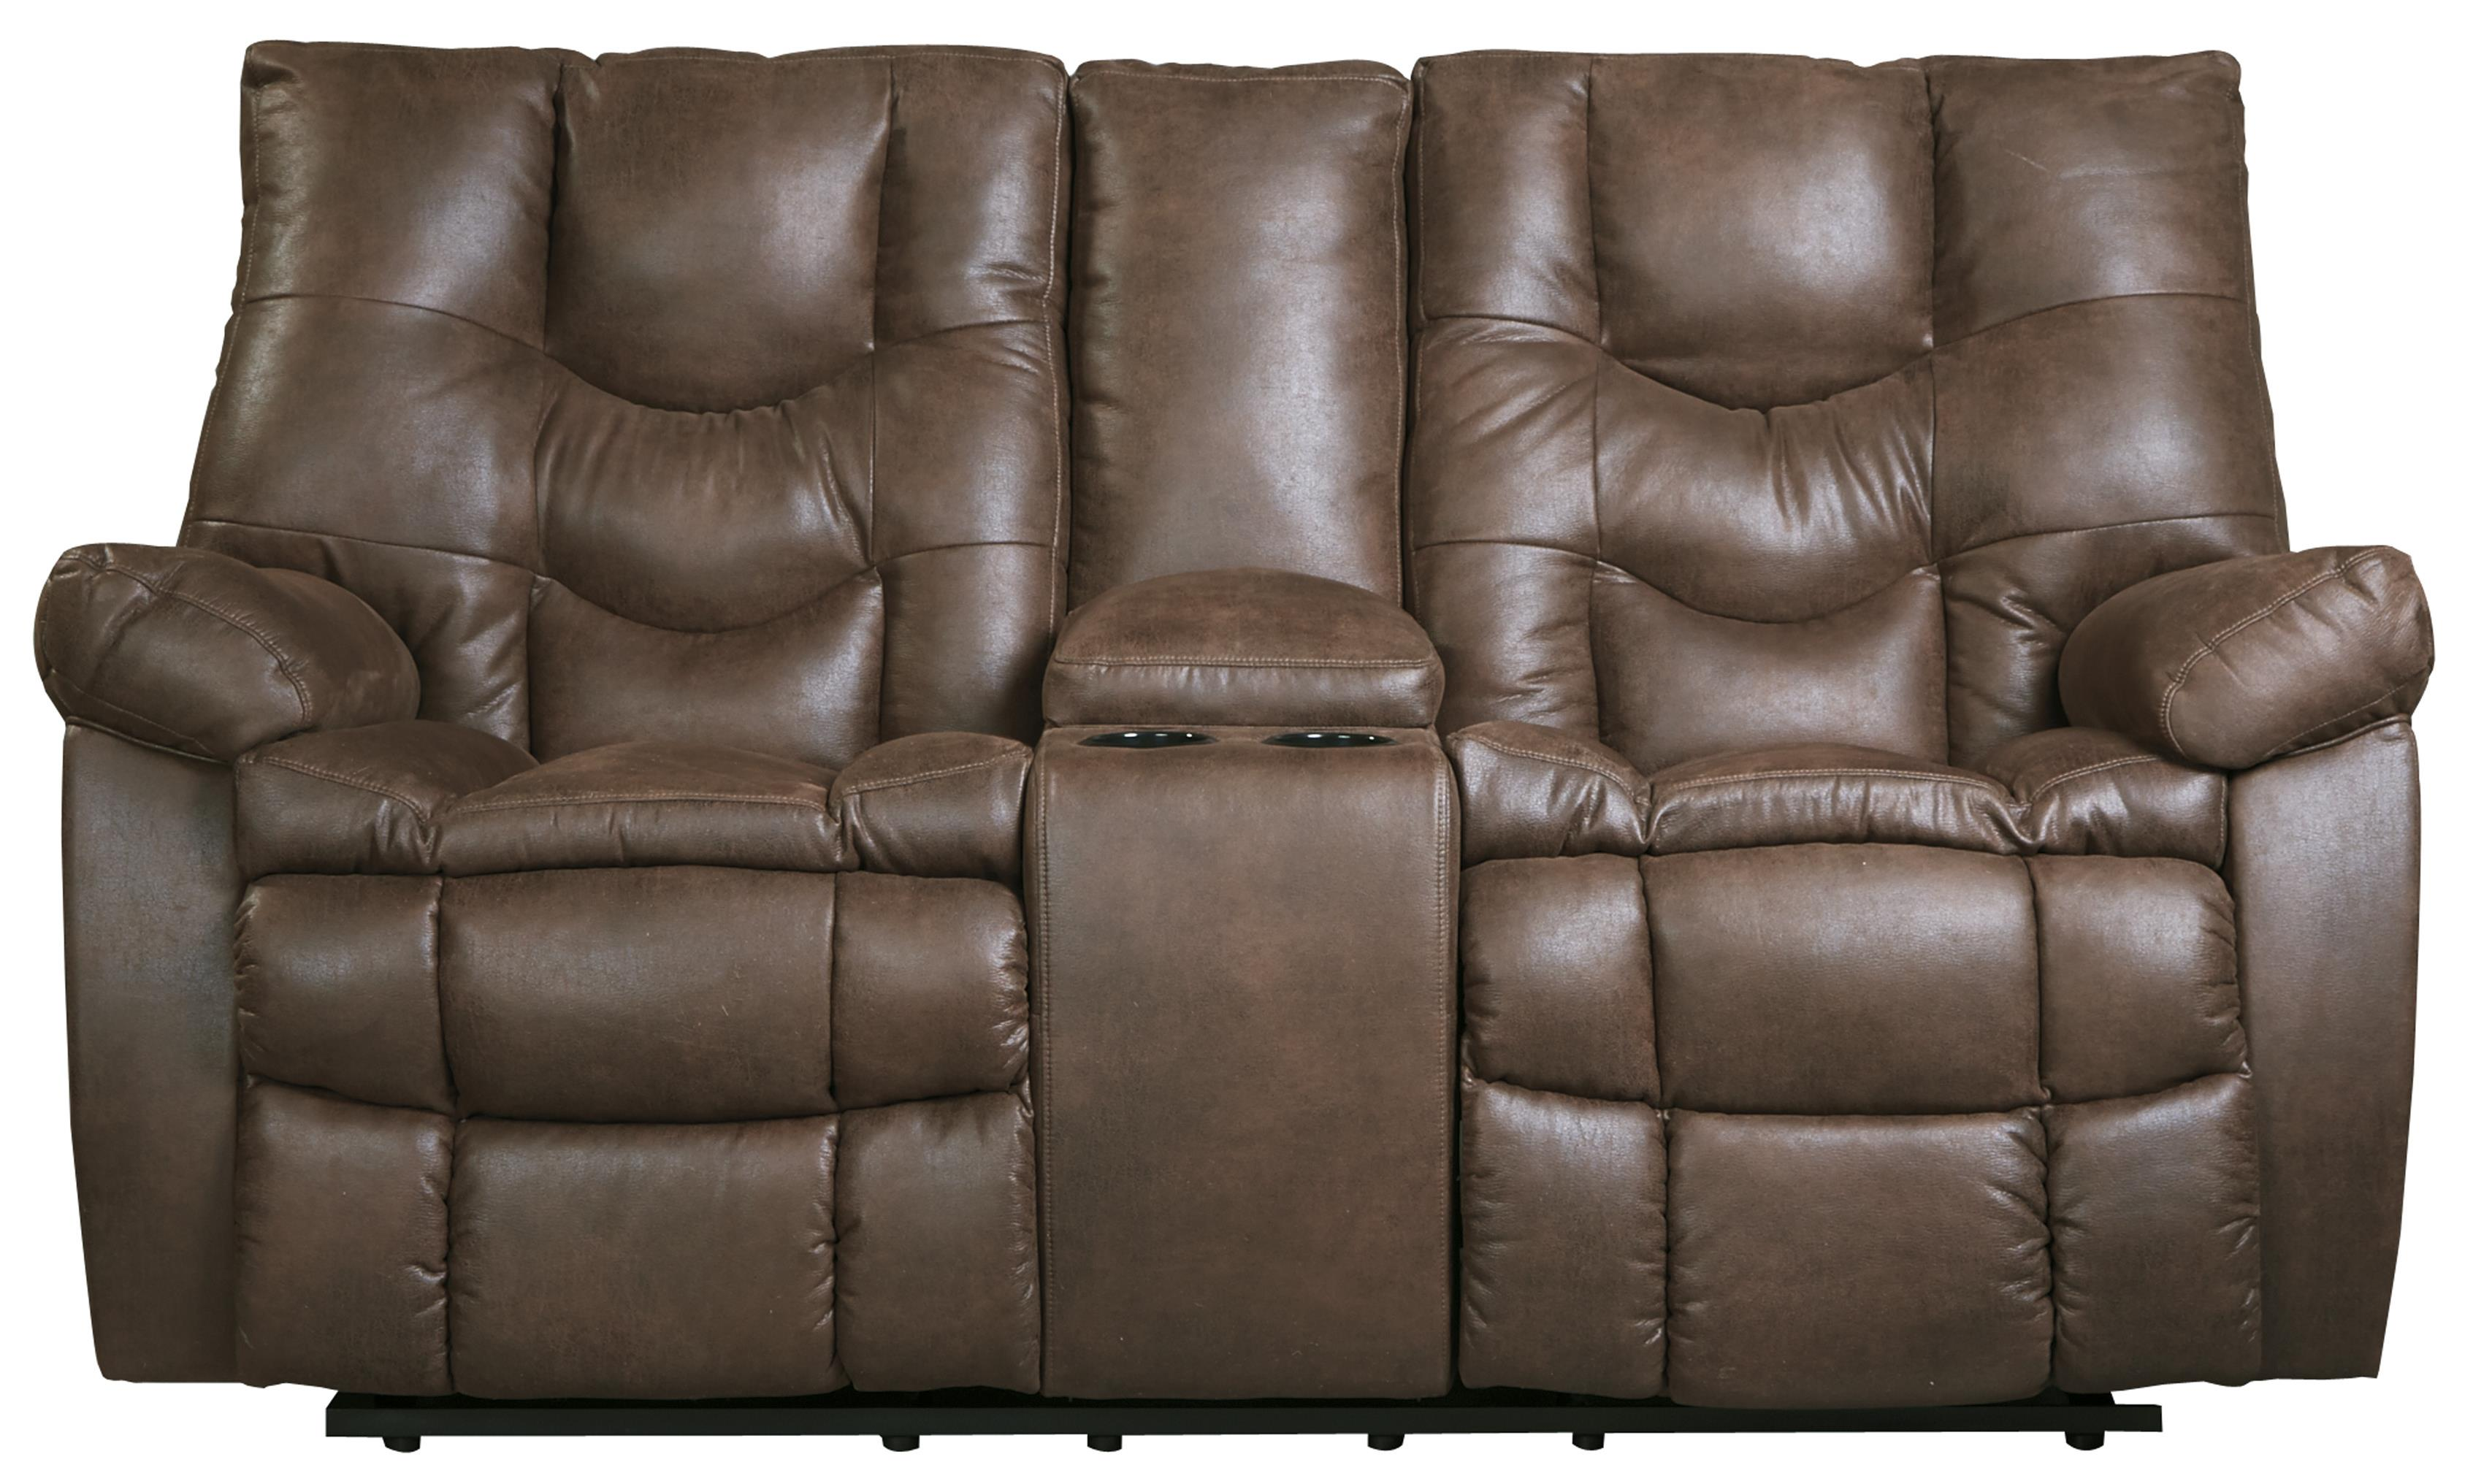 Benchcraft Burgett Glider Reclining Power Loveseat w/ Console - Item Number: 9220191